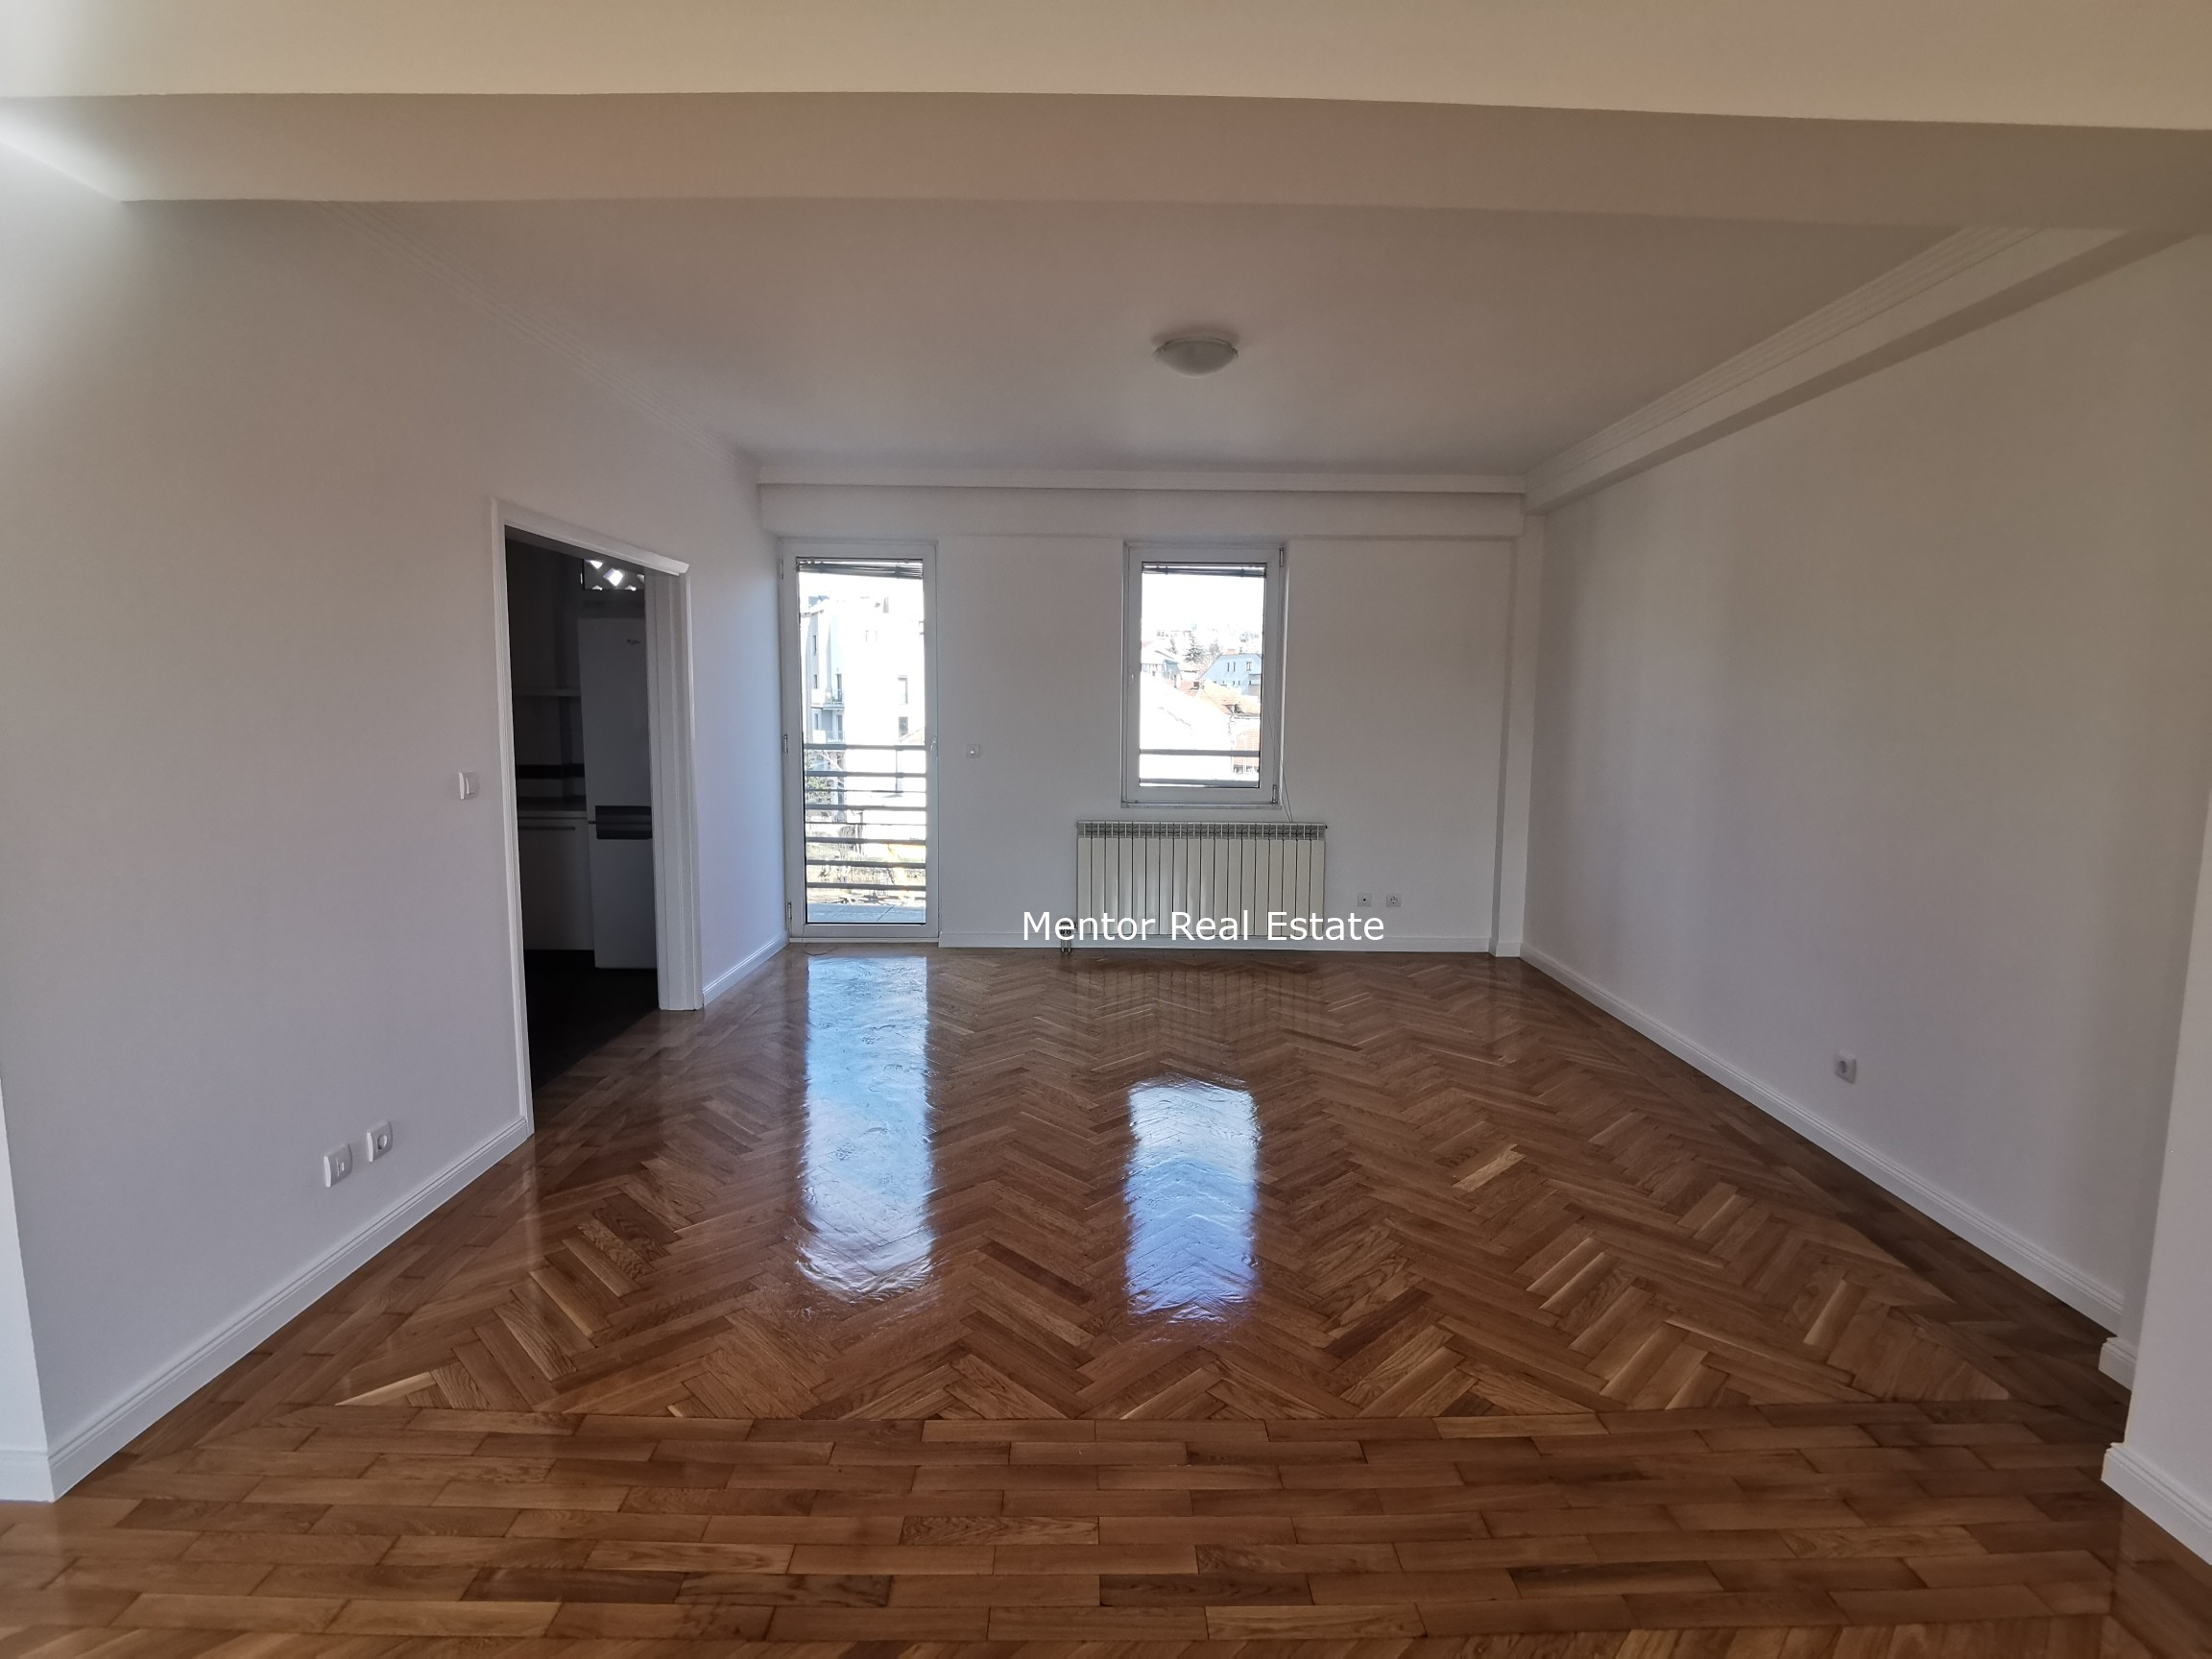 Vračar 170sqm luxury apartment for rent